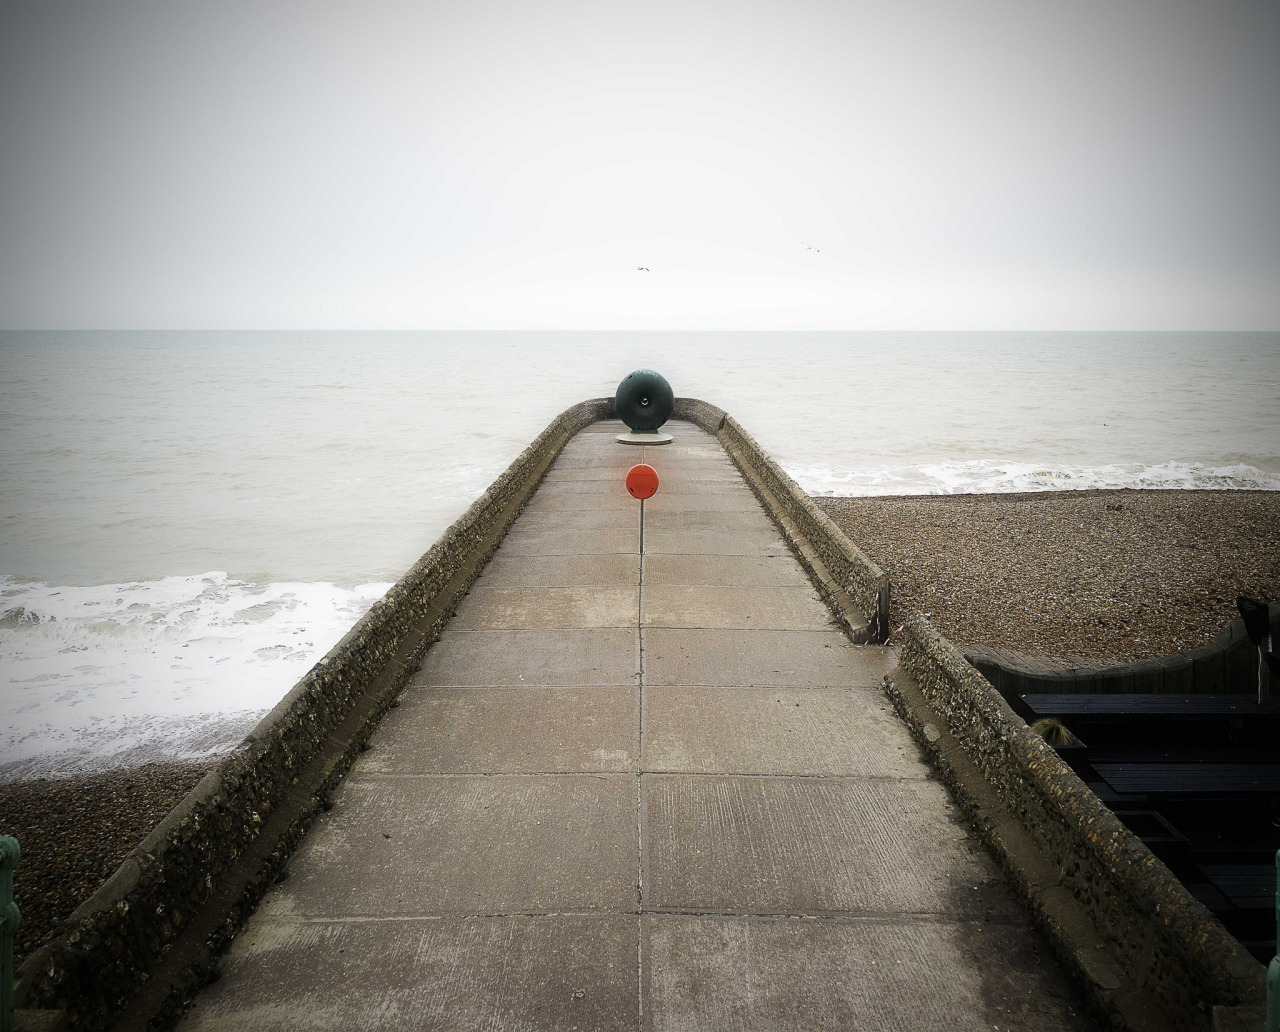 Pier lifesaver 3 | Flickr - Photo Sharing!